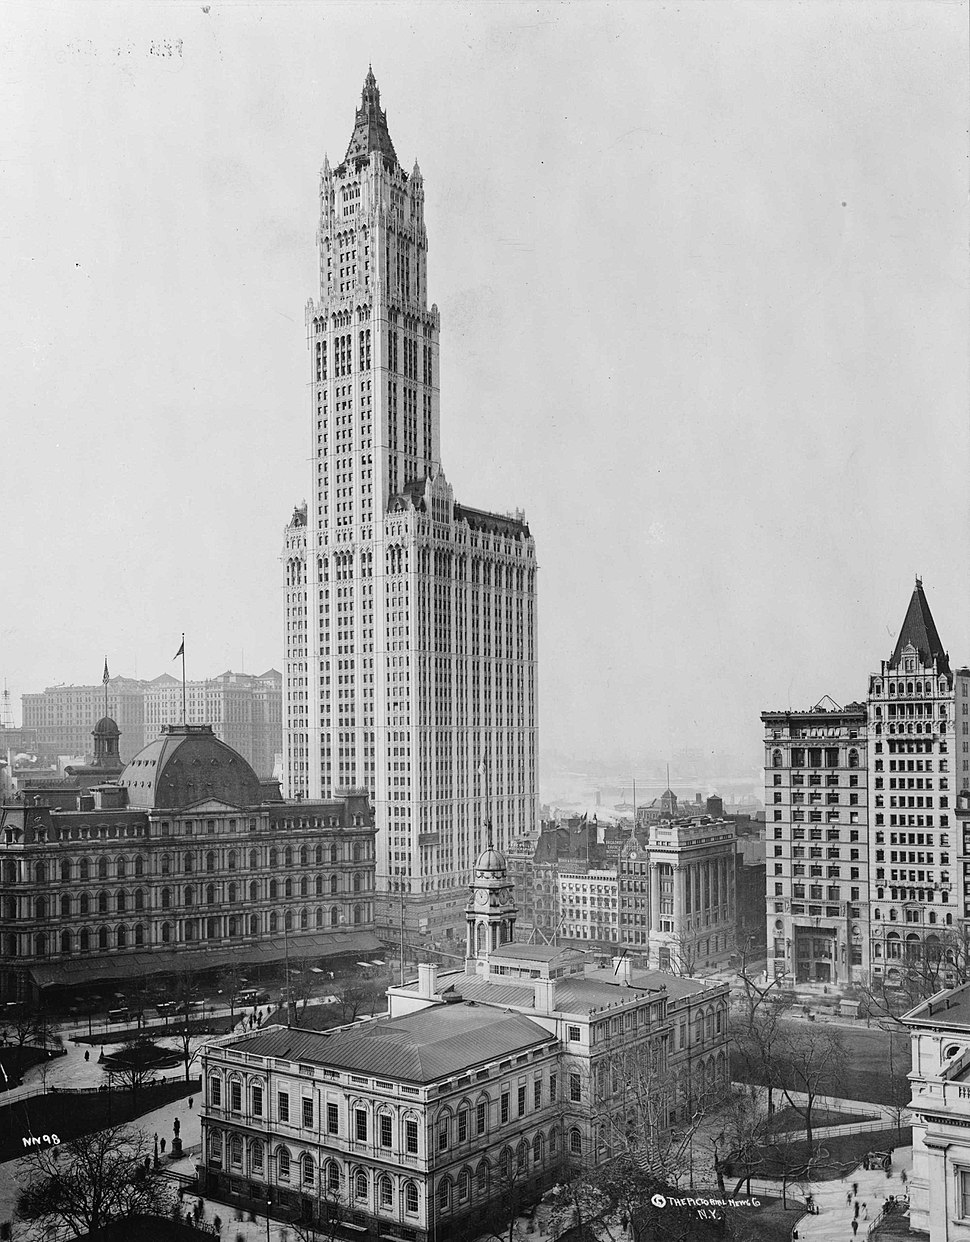 View of Woolworth Building and surrounding buildings New York City 1913